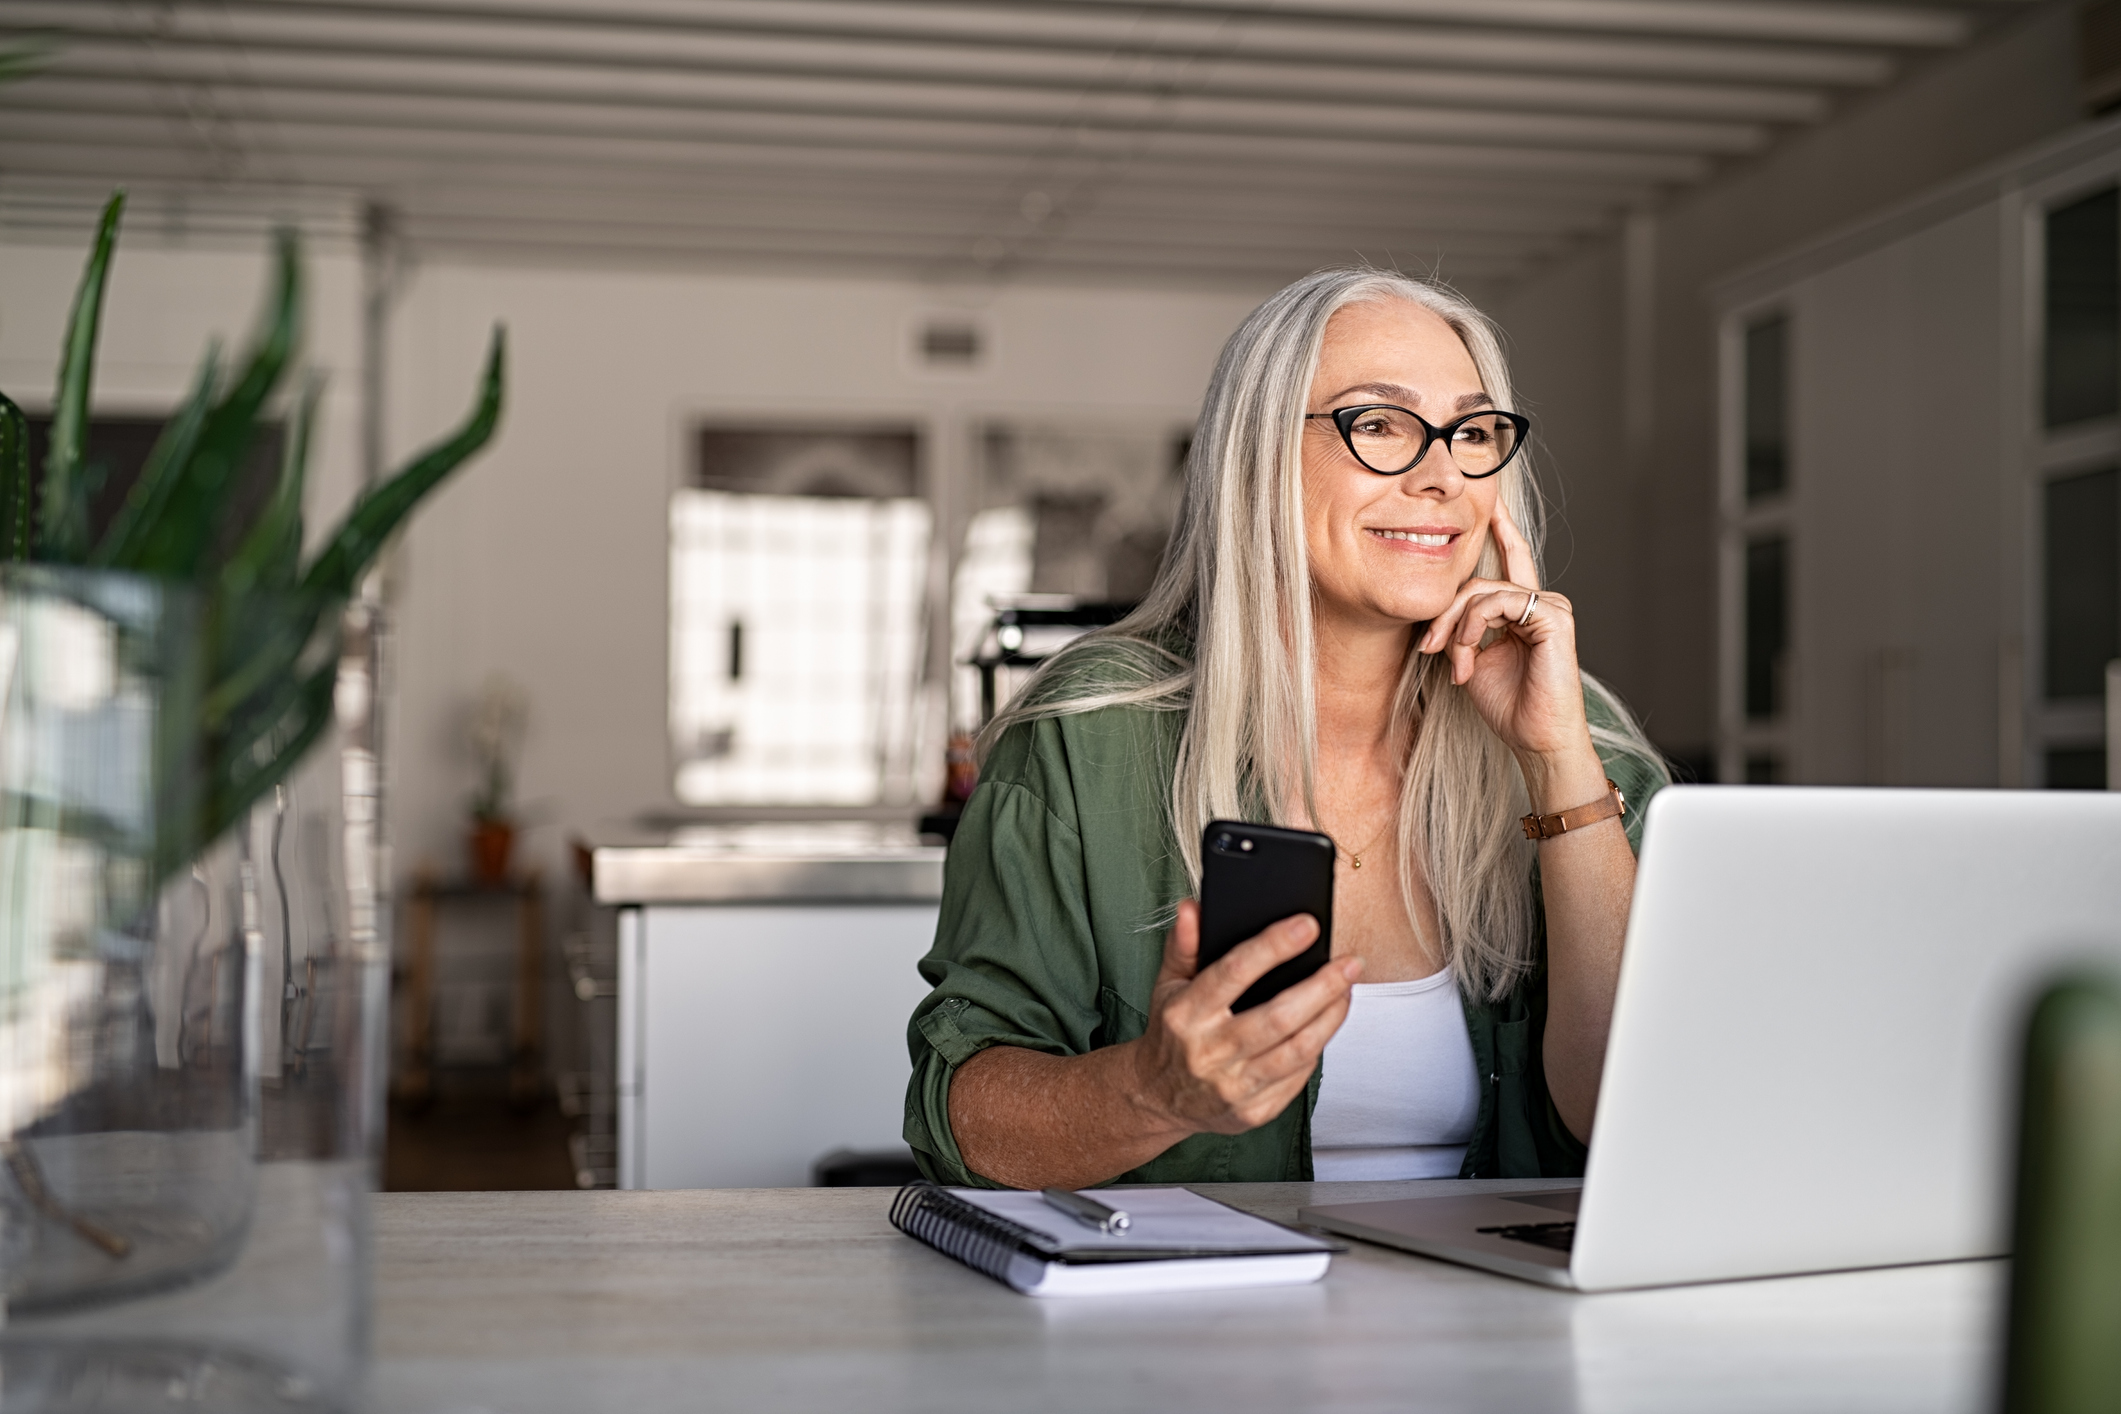 Woman setting up automatic bill pay on her mobile banking app